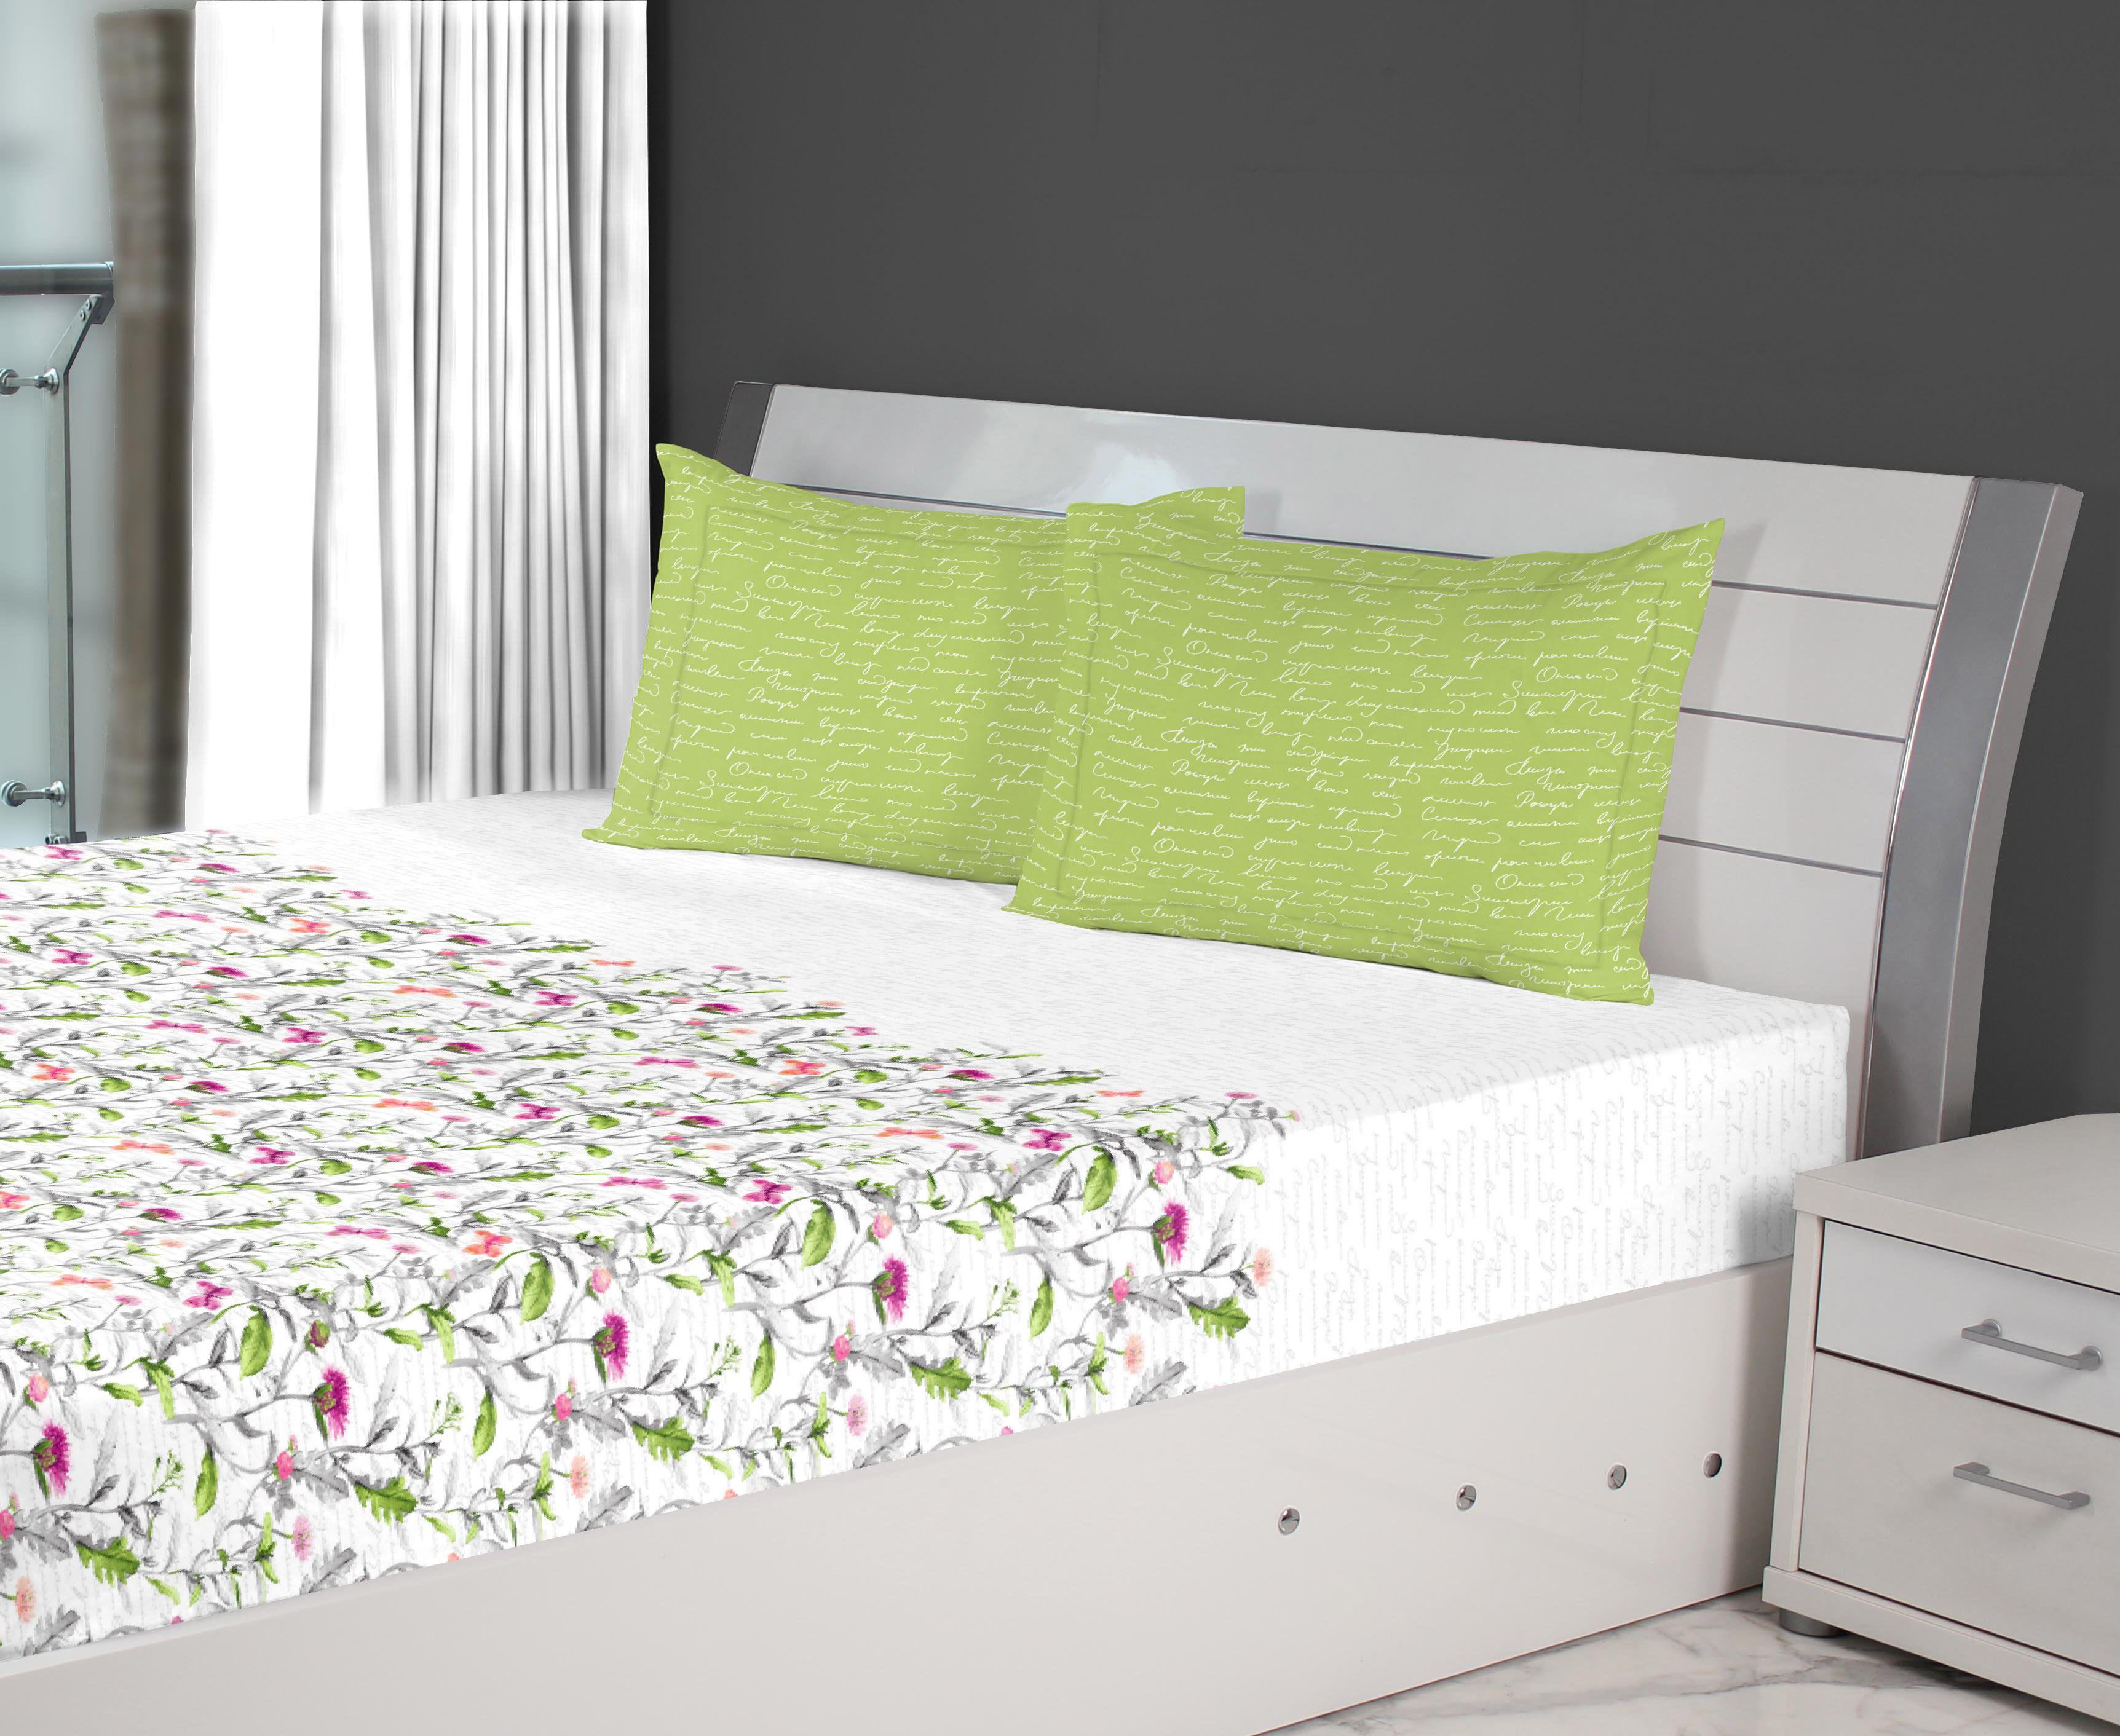 Nora Butterfly Printed Cotton Double Bedsheets in Green Colour by Living Essence